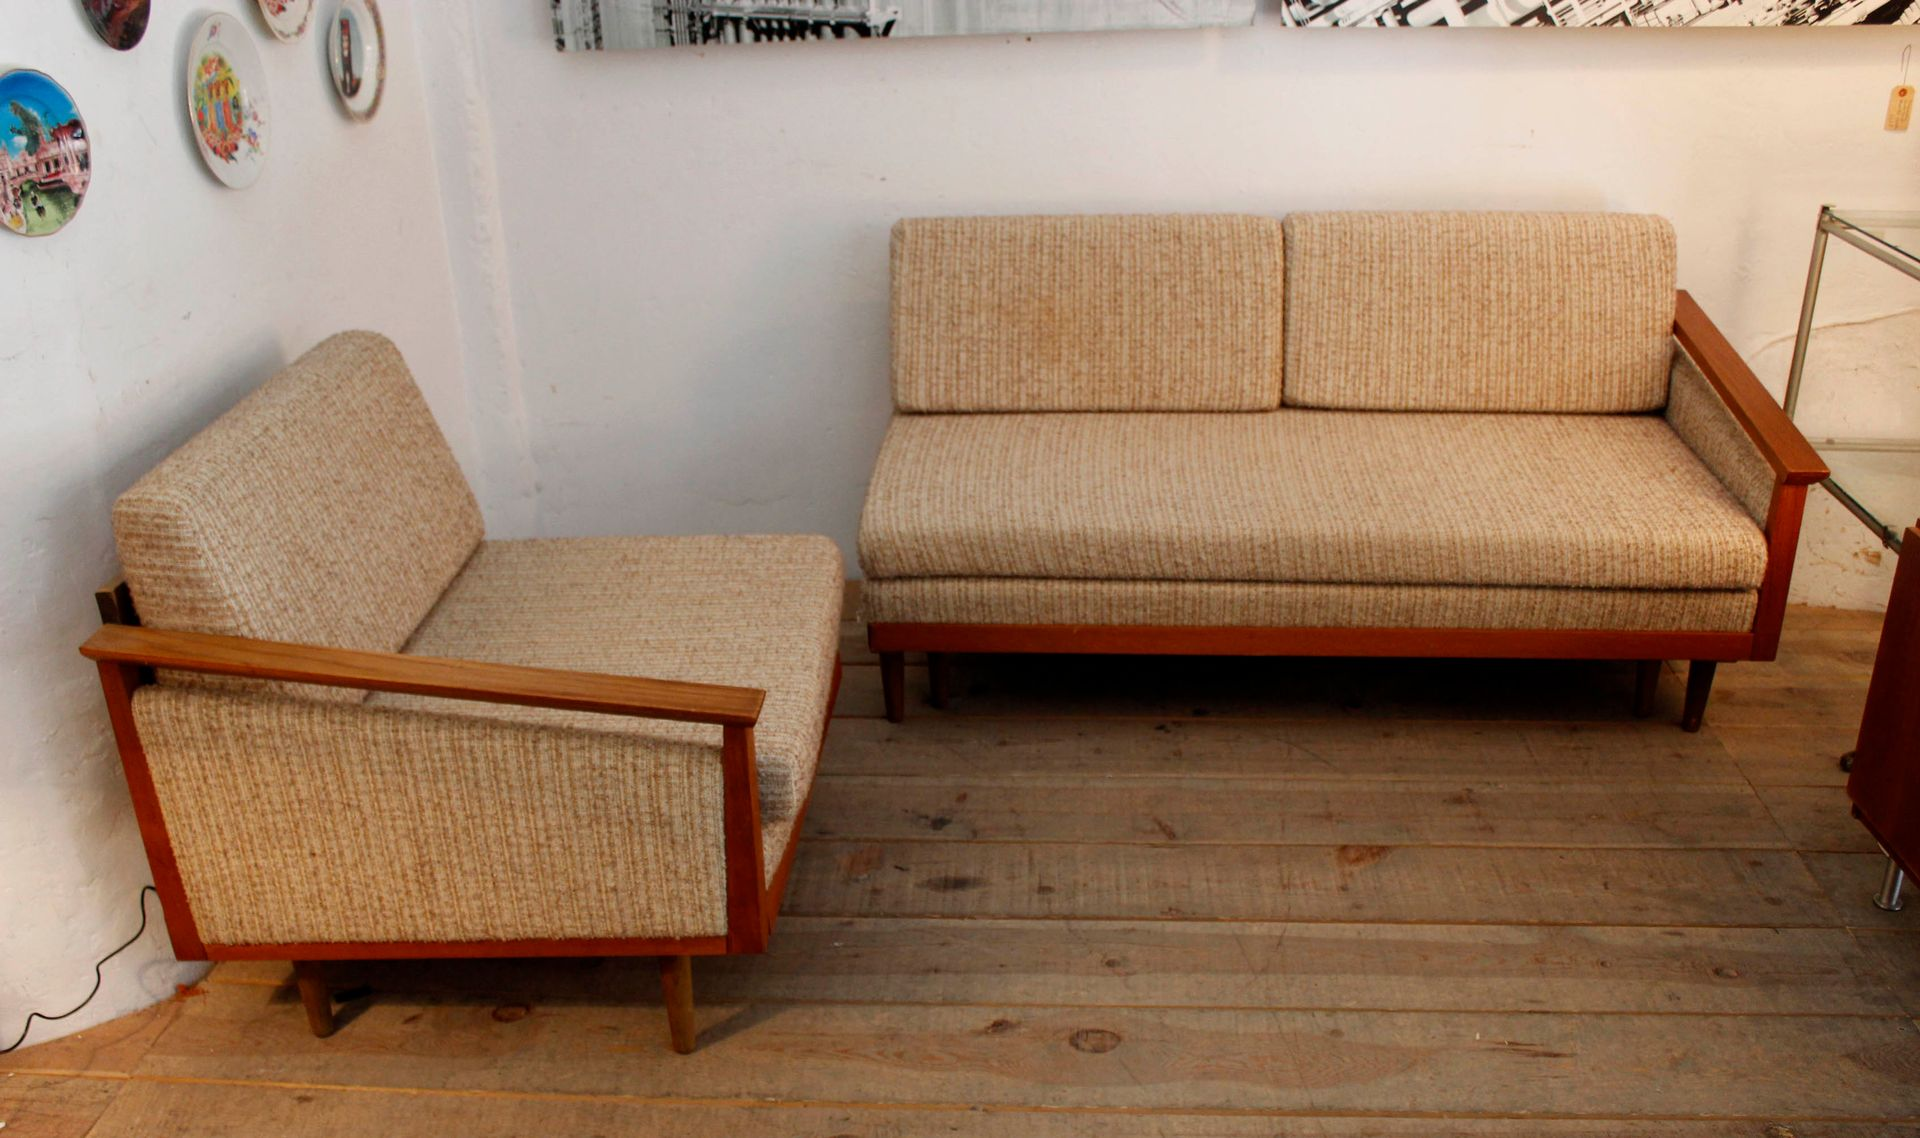 Vintage swedish four seater sofa with chaise longue for for Sofa 1 plaza chaise longue